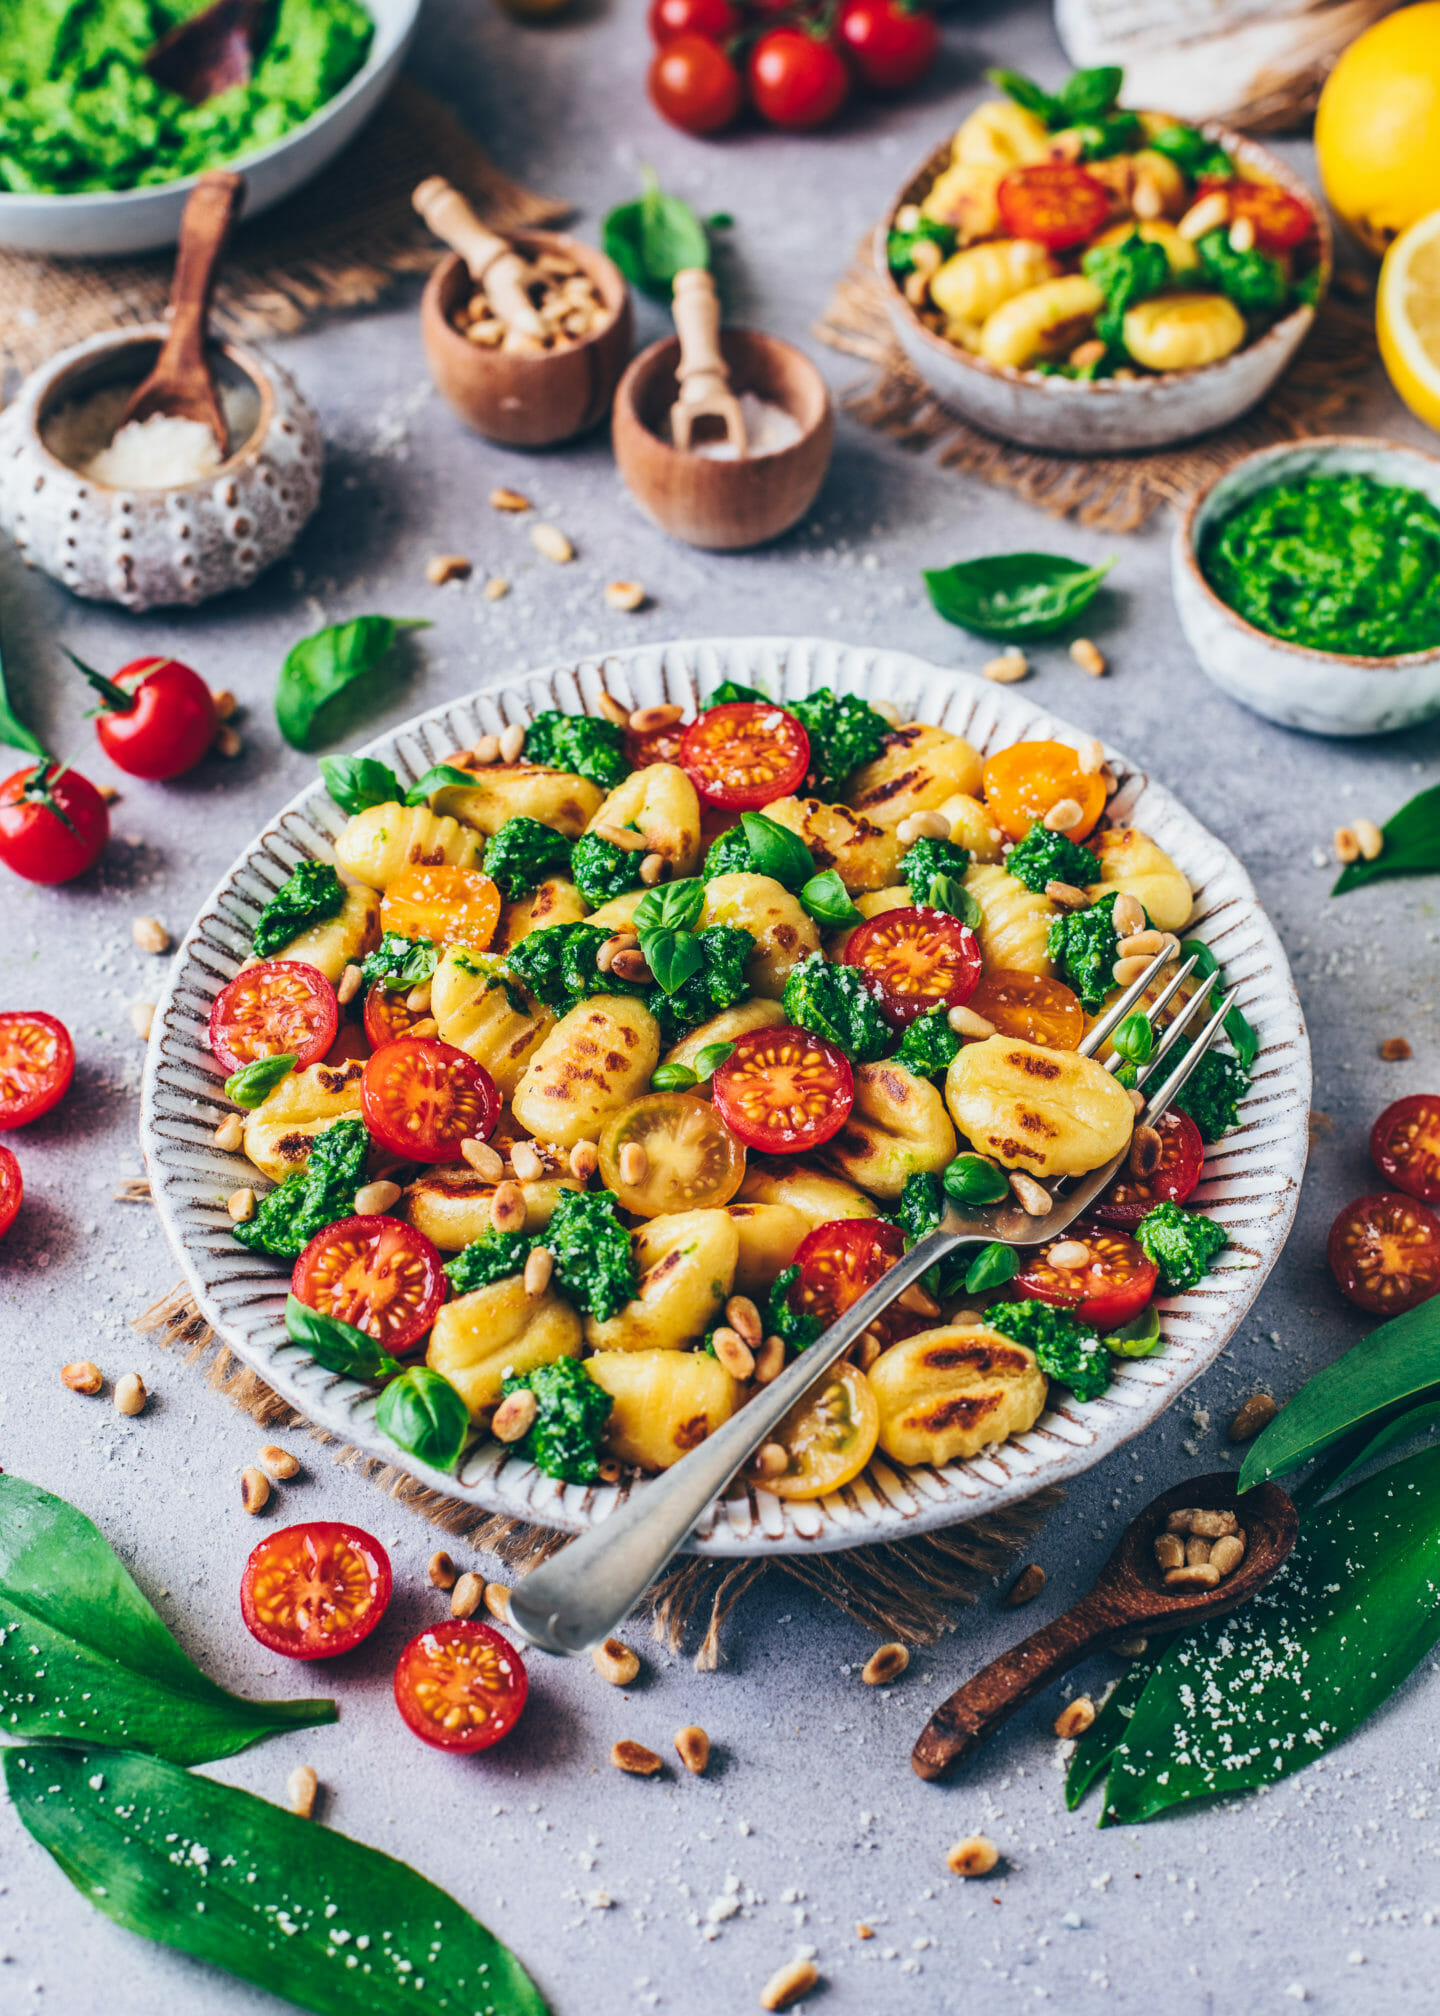 gnocchi with wild garlic, pesto, heirloom tomatoes, parmesan cheese, and basil (food photography)